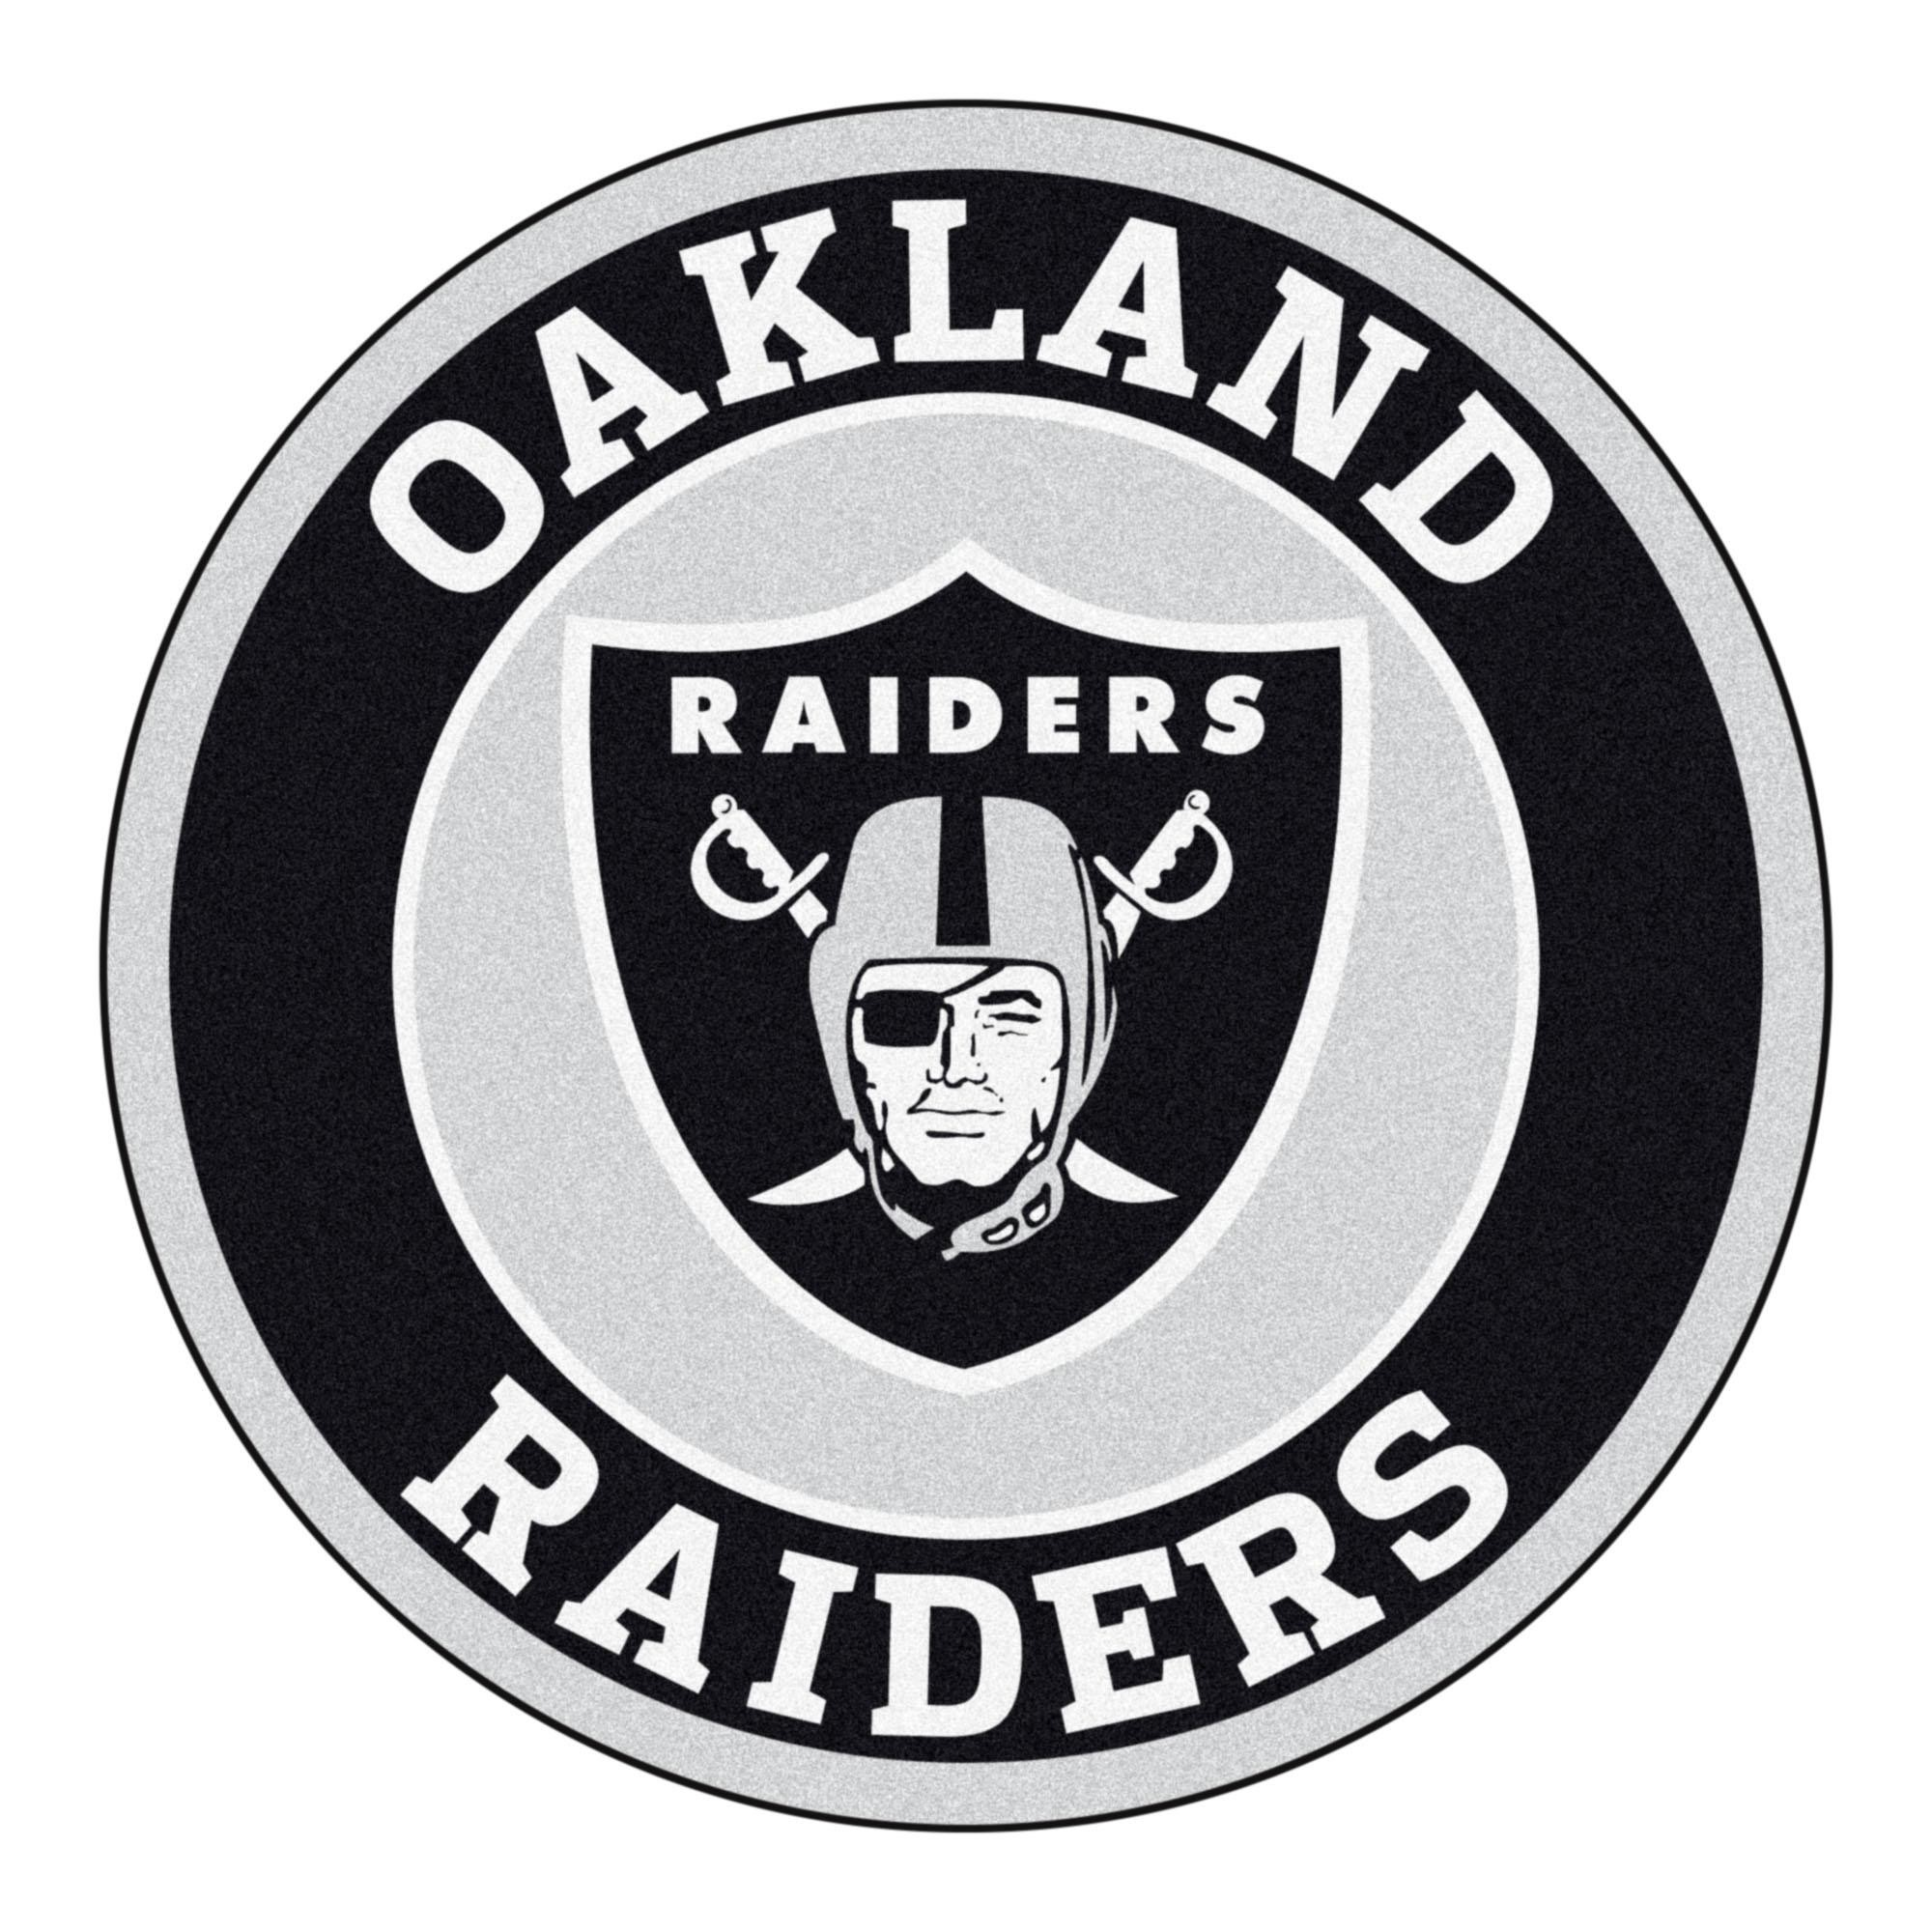 Free Oakland Raiders Wallpapers: Oakland Raiders Pictures Wallpaper (60+ Images